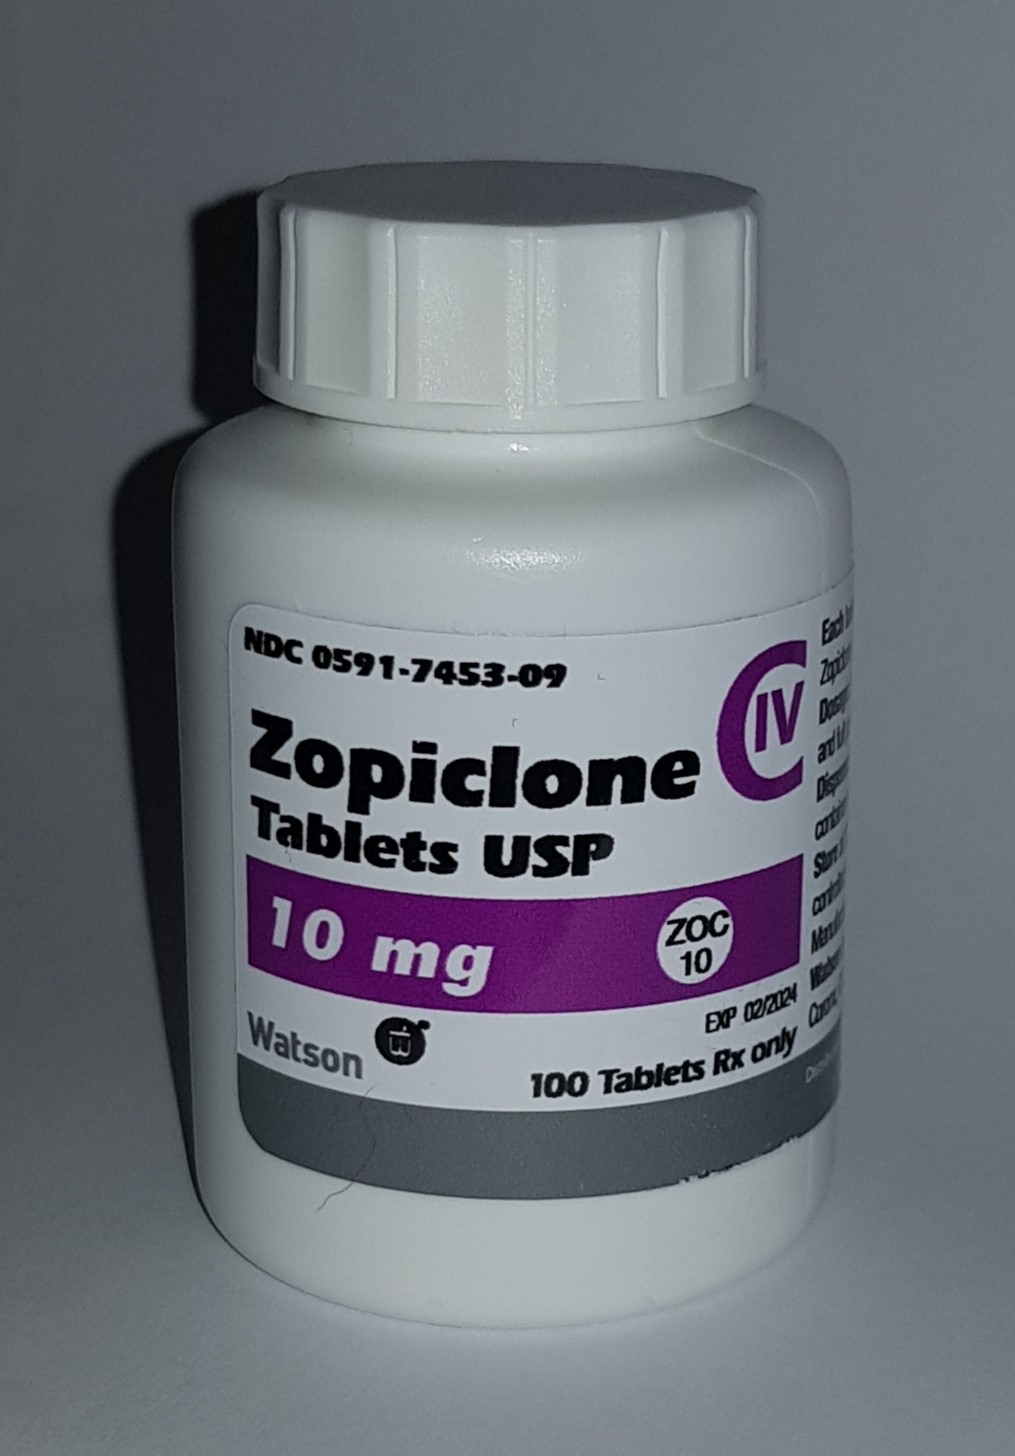 BUY ZOPICLONE 10MG (100 USA Tablets)